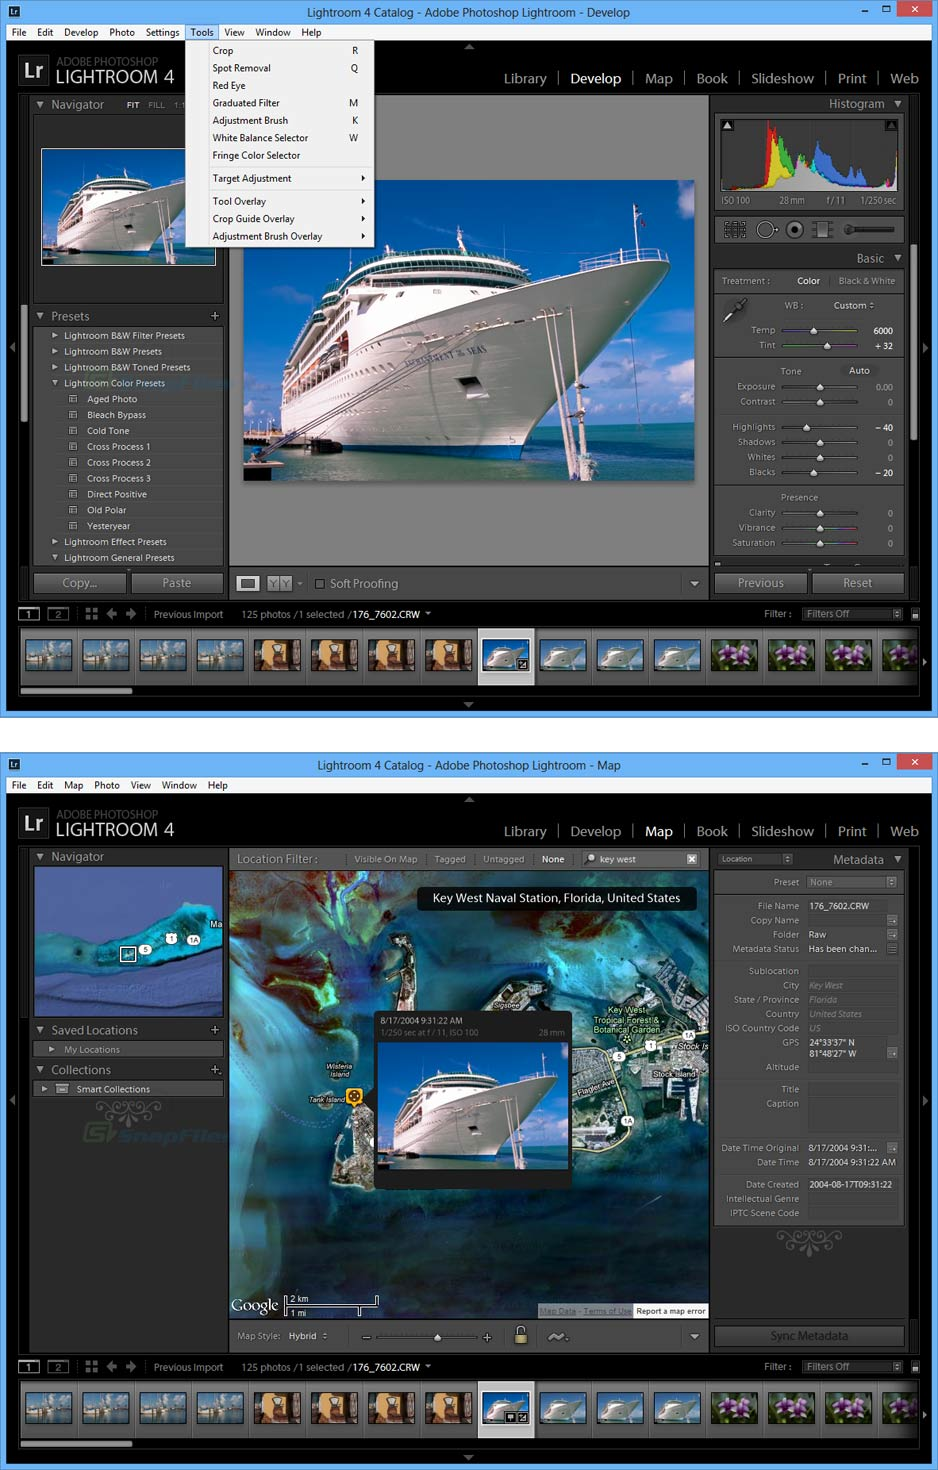 screenshot of Adobe Lightroom